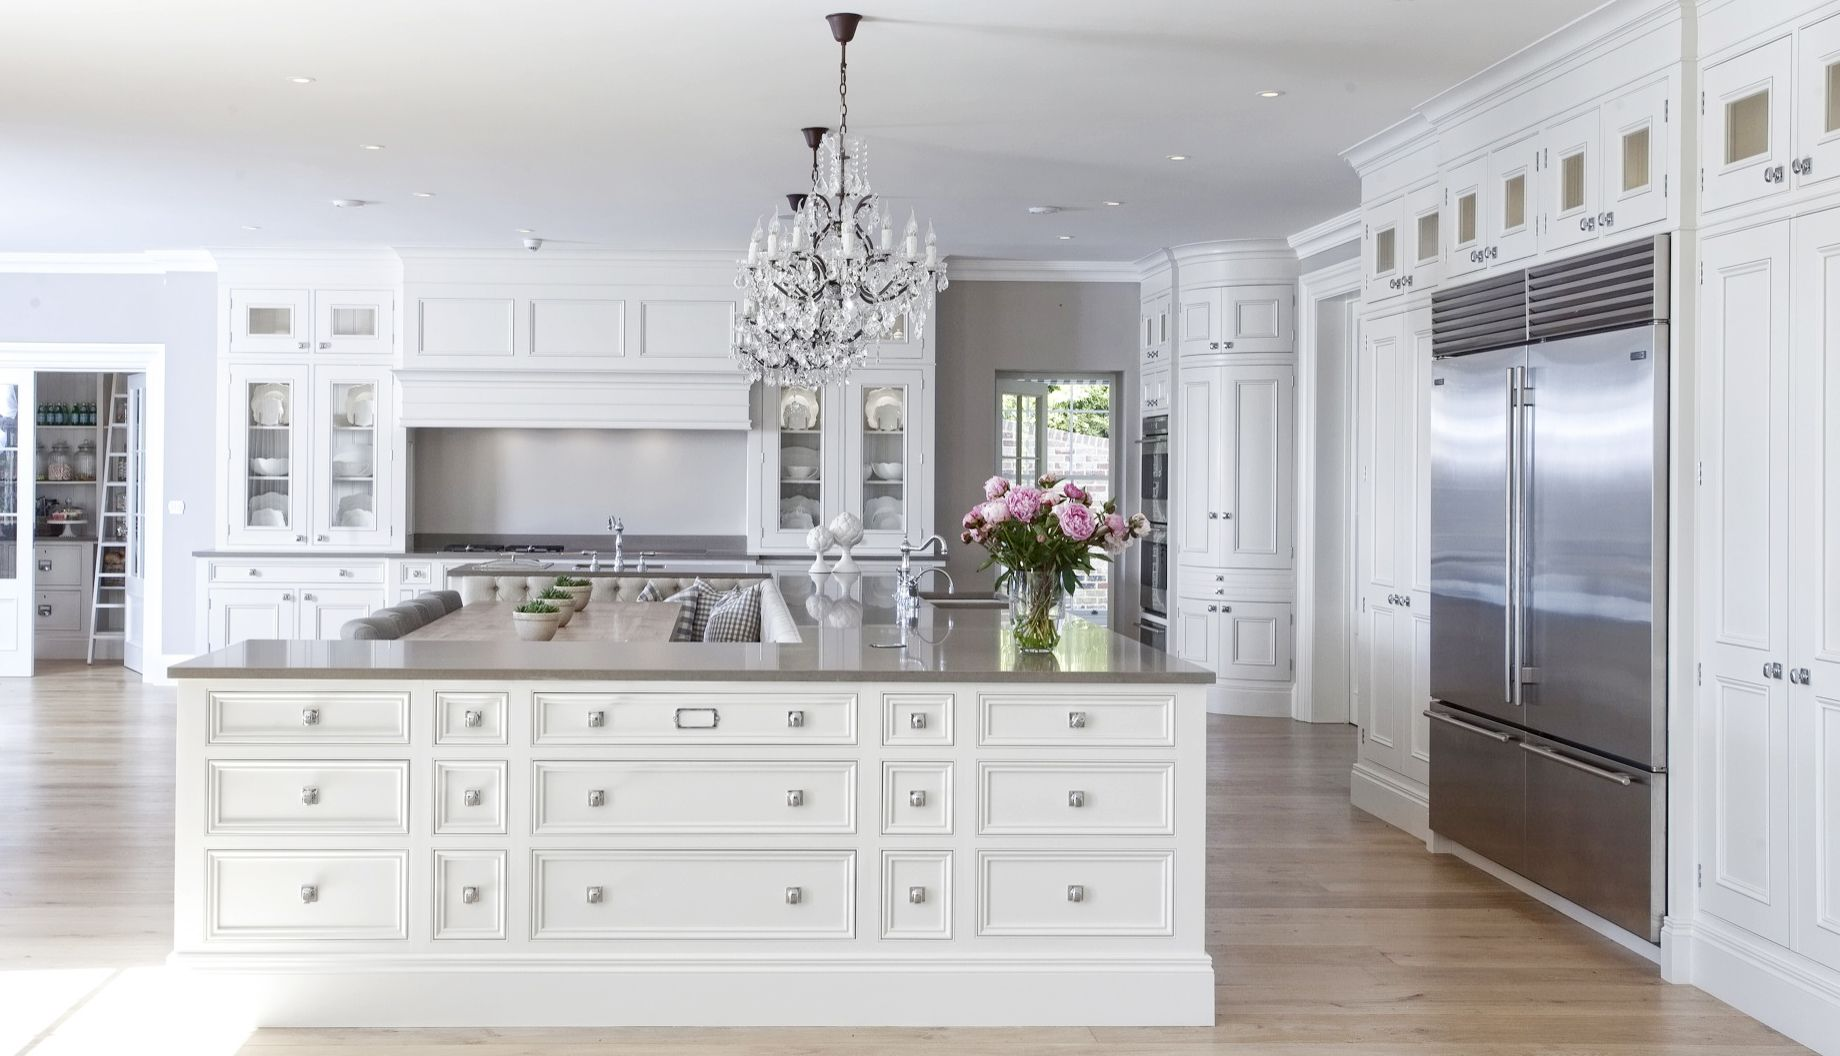 Neutral, Luxurious Kitchen With Three Chandeliers, Floor To Ceiling  Cabinetry